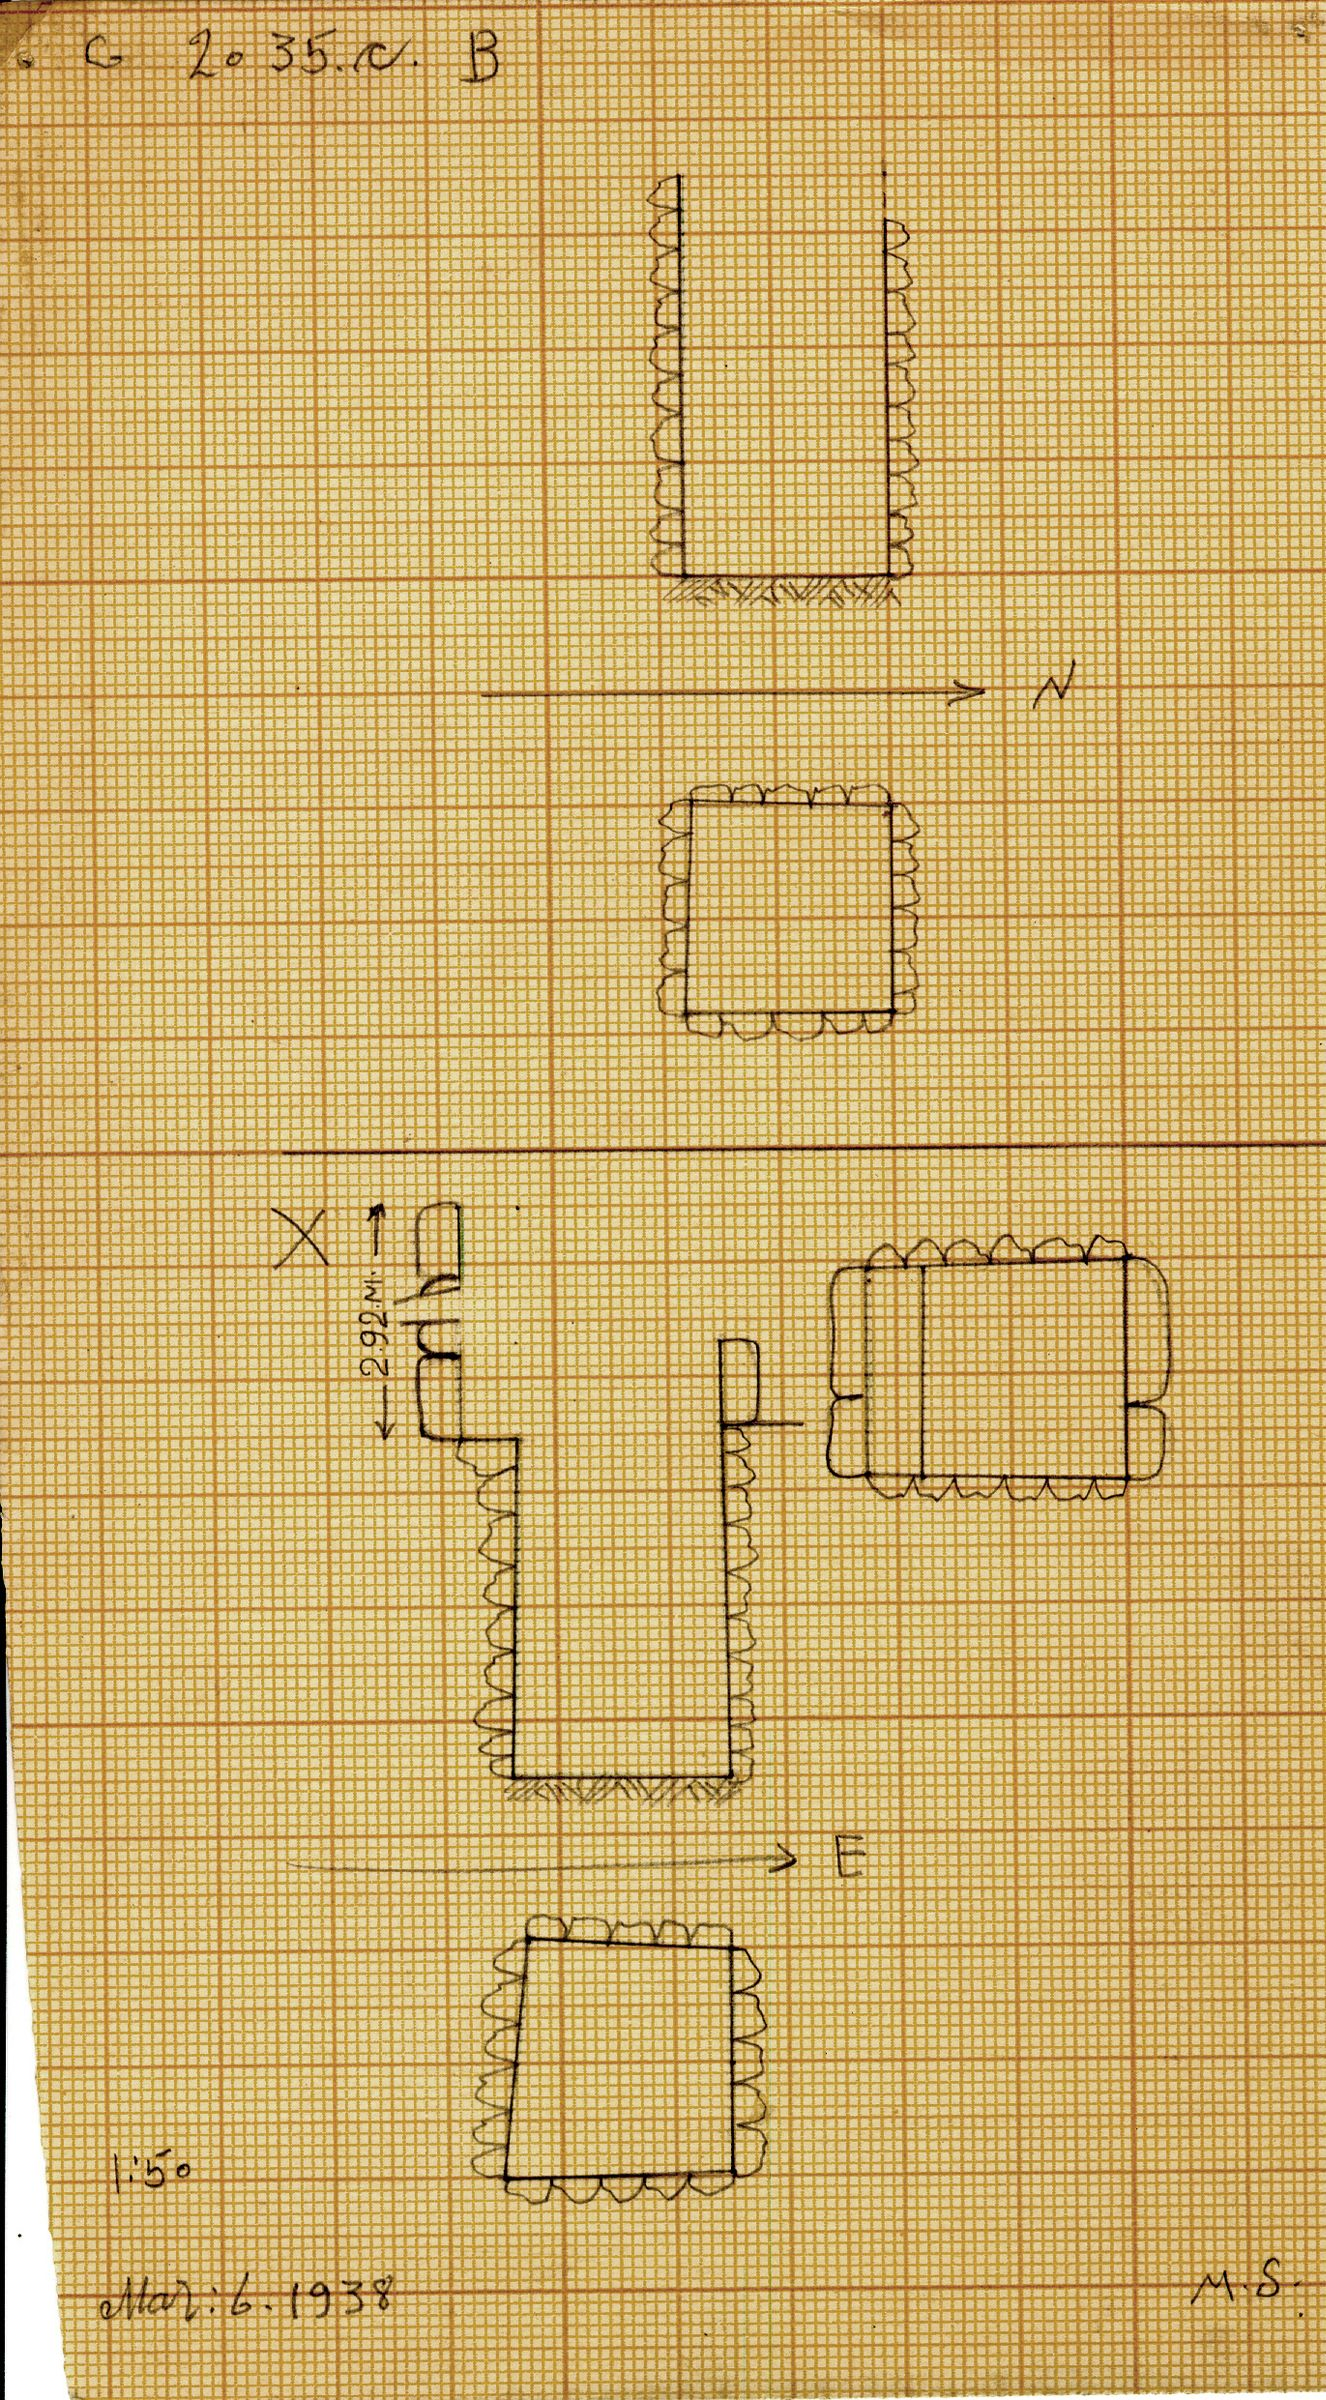 Maps and plans: G 2035c, Shaft B and X